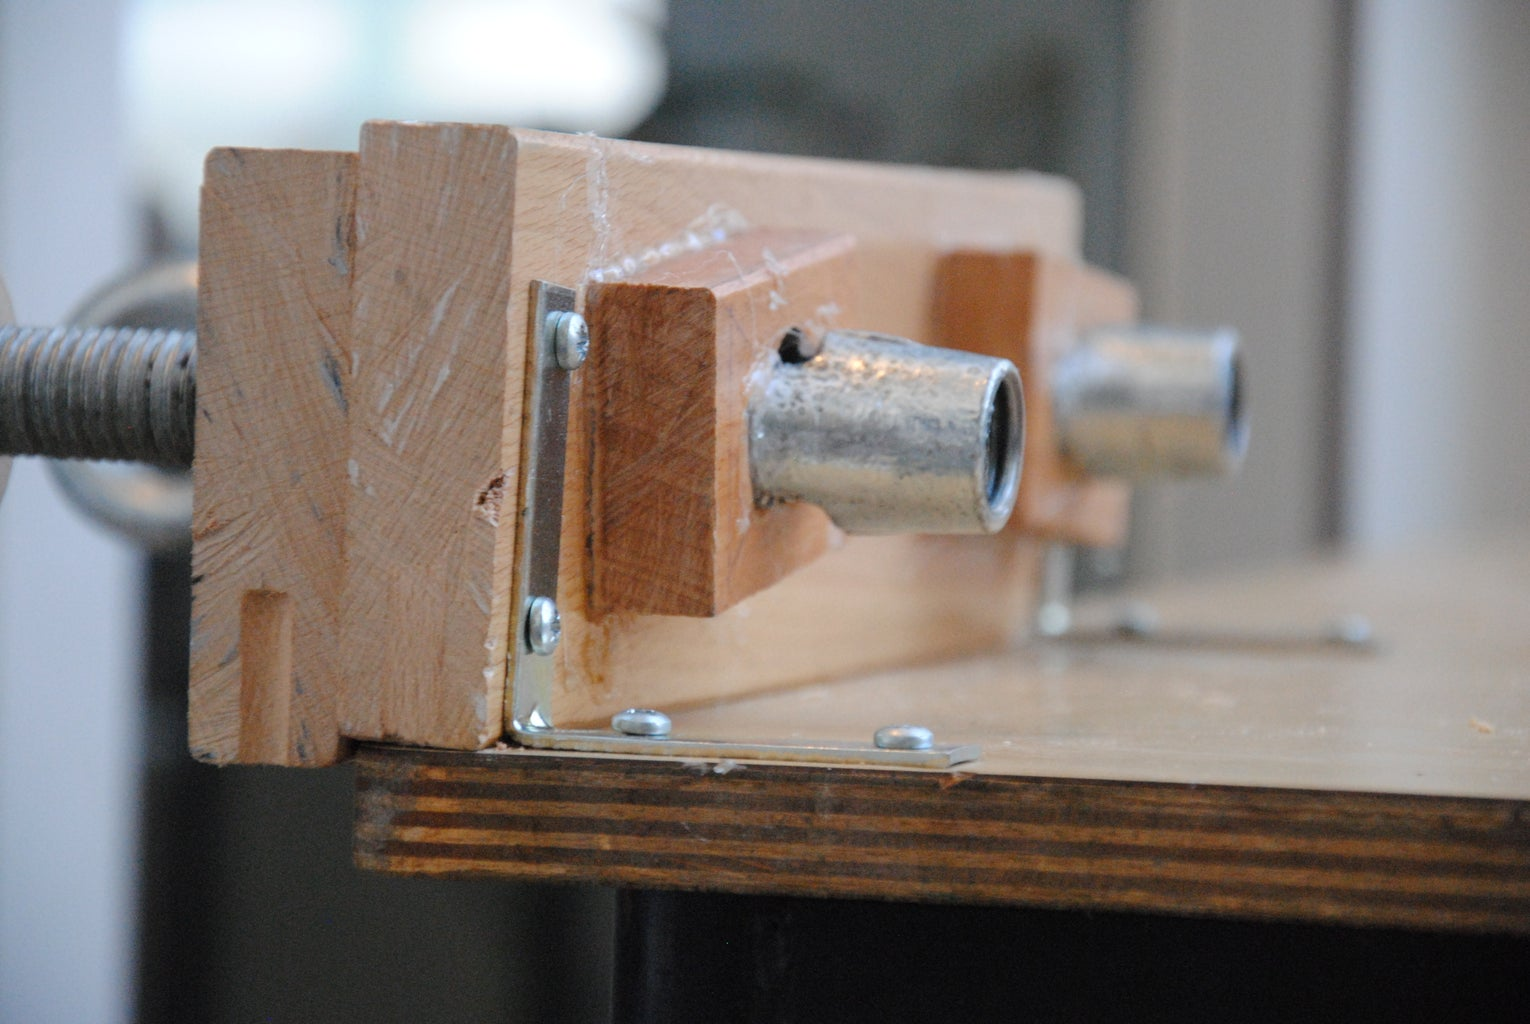 Secure the Vise to the Table